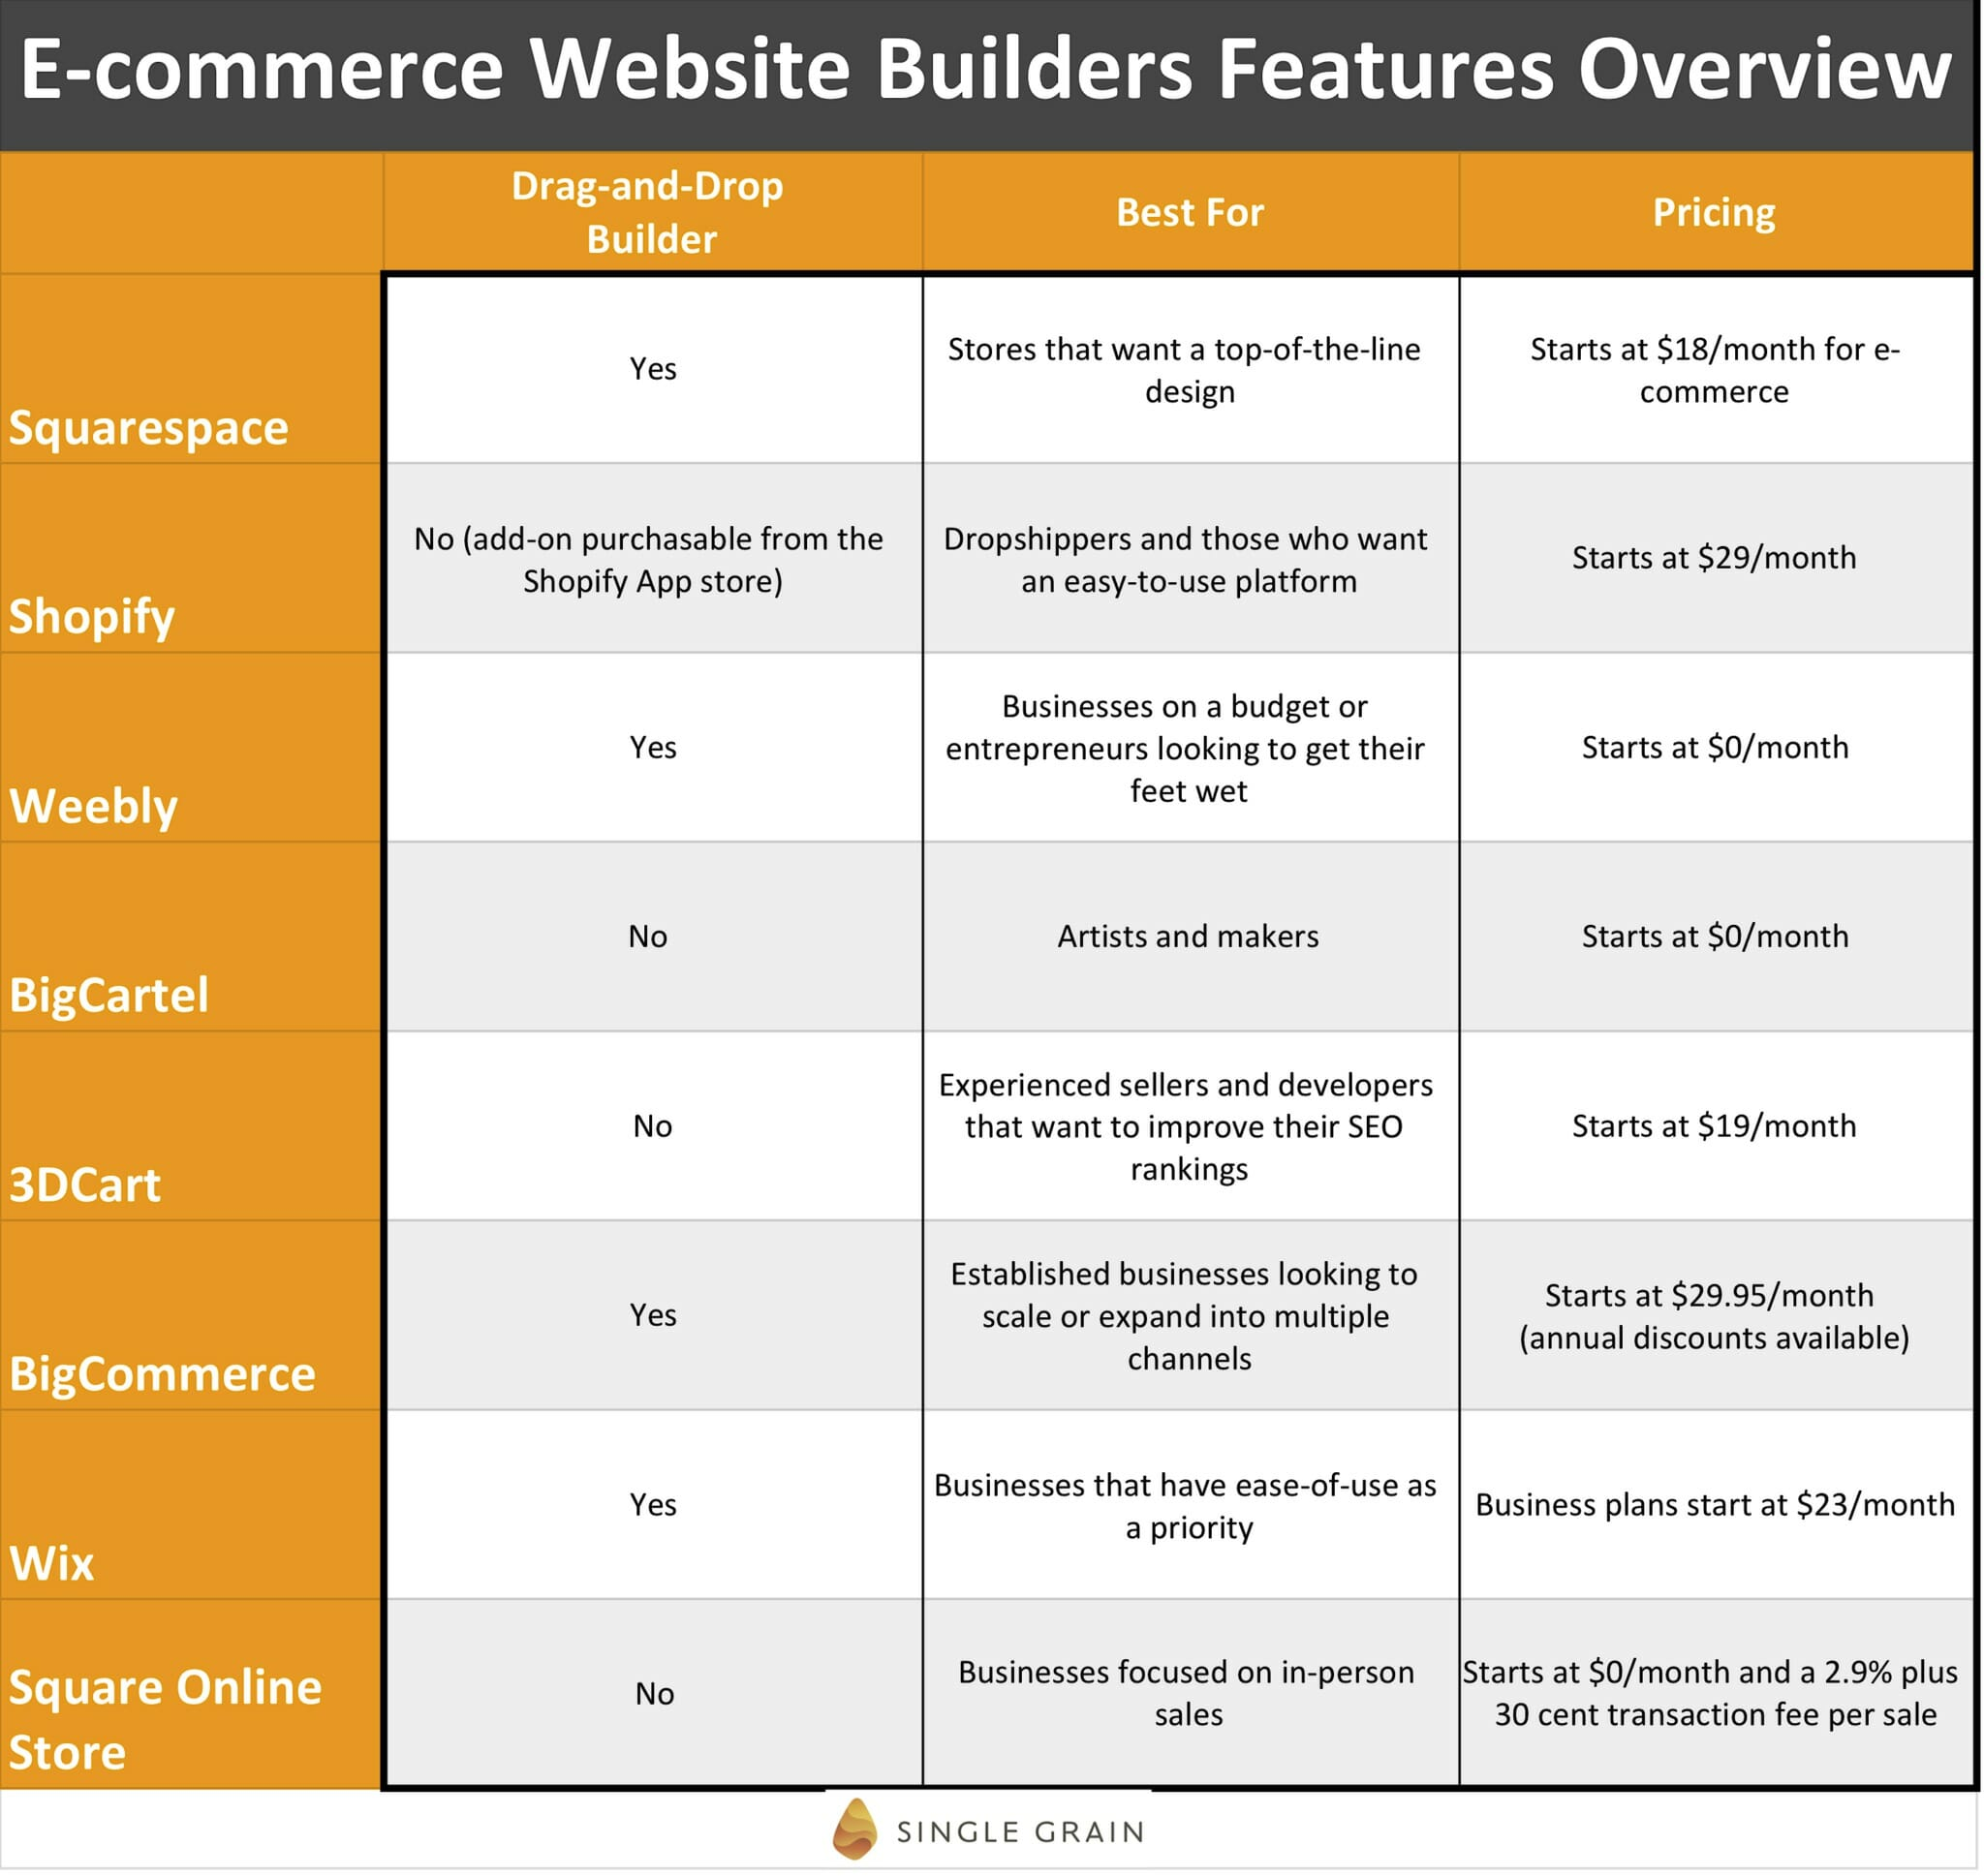 Chart - Ecommerce Website Builders Features Overview